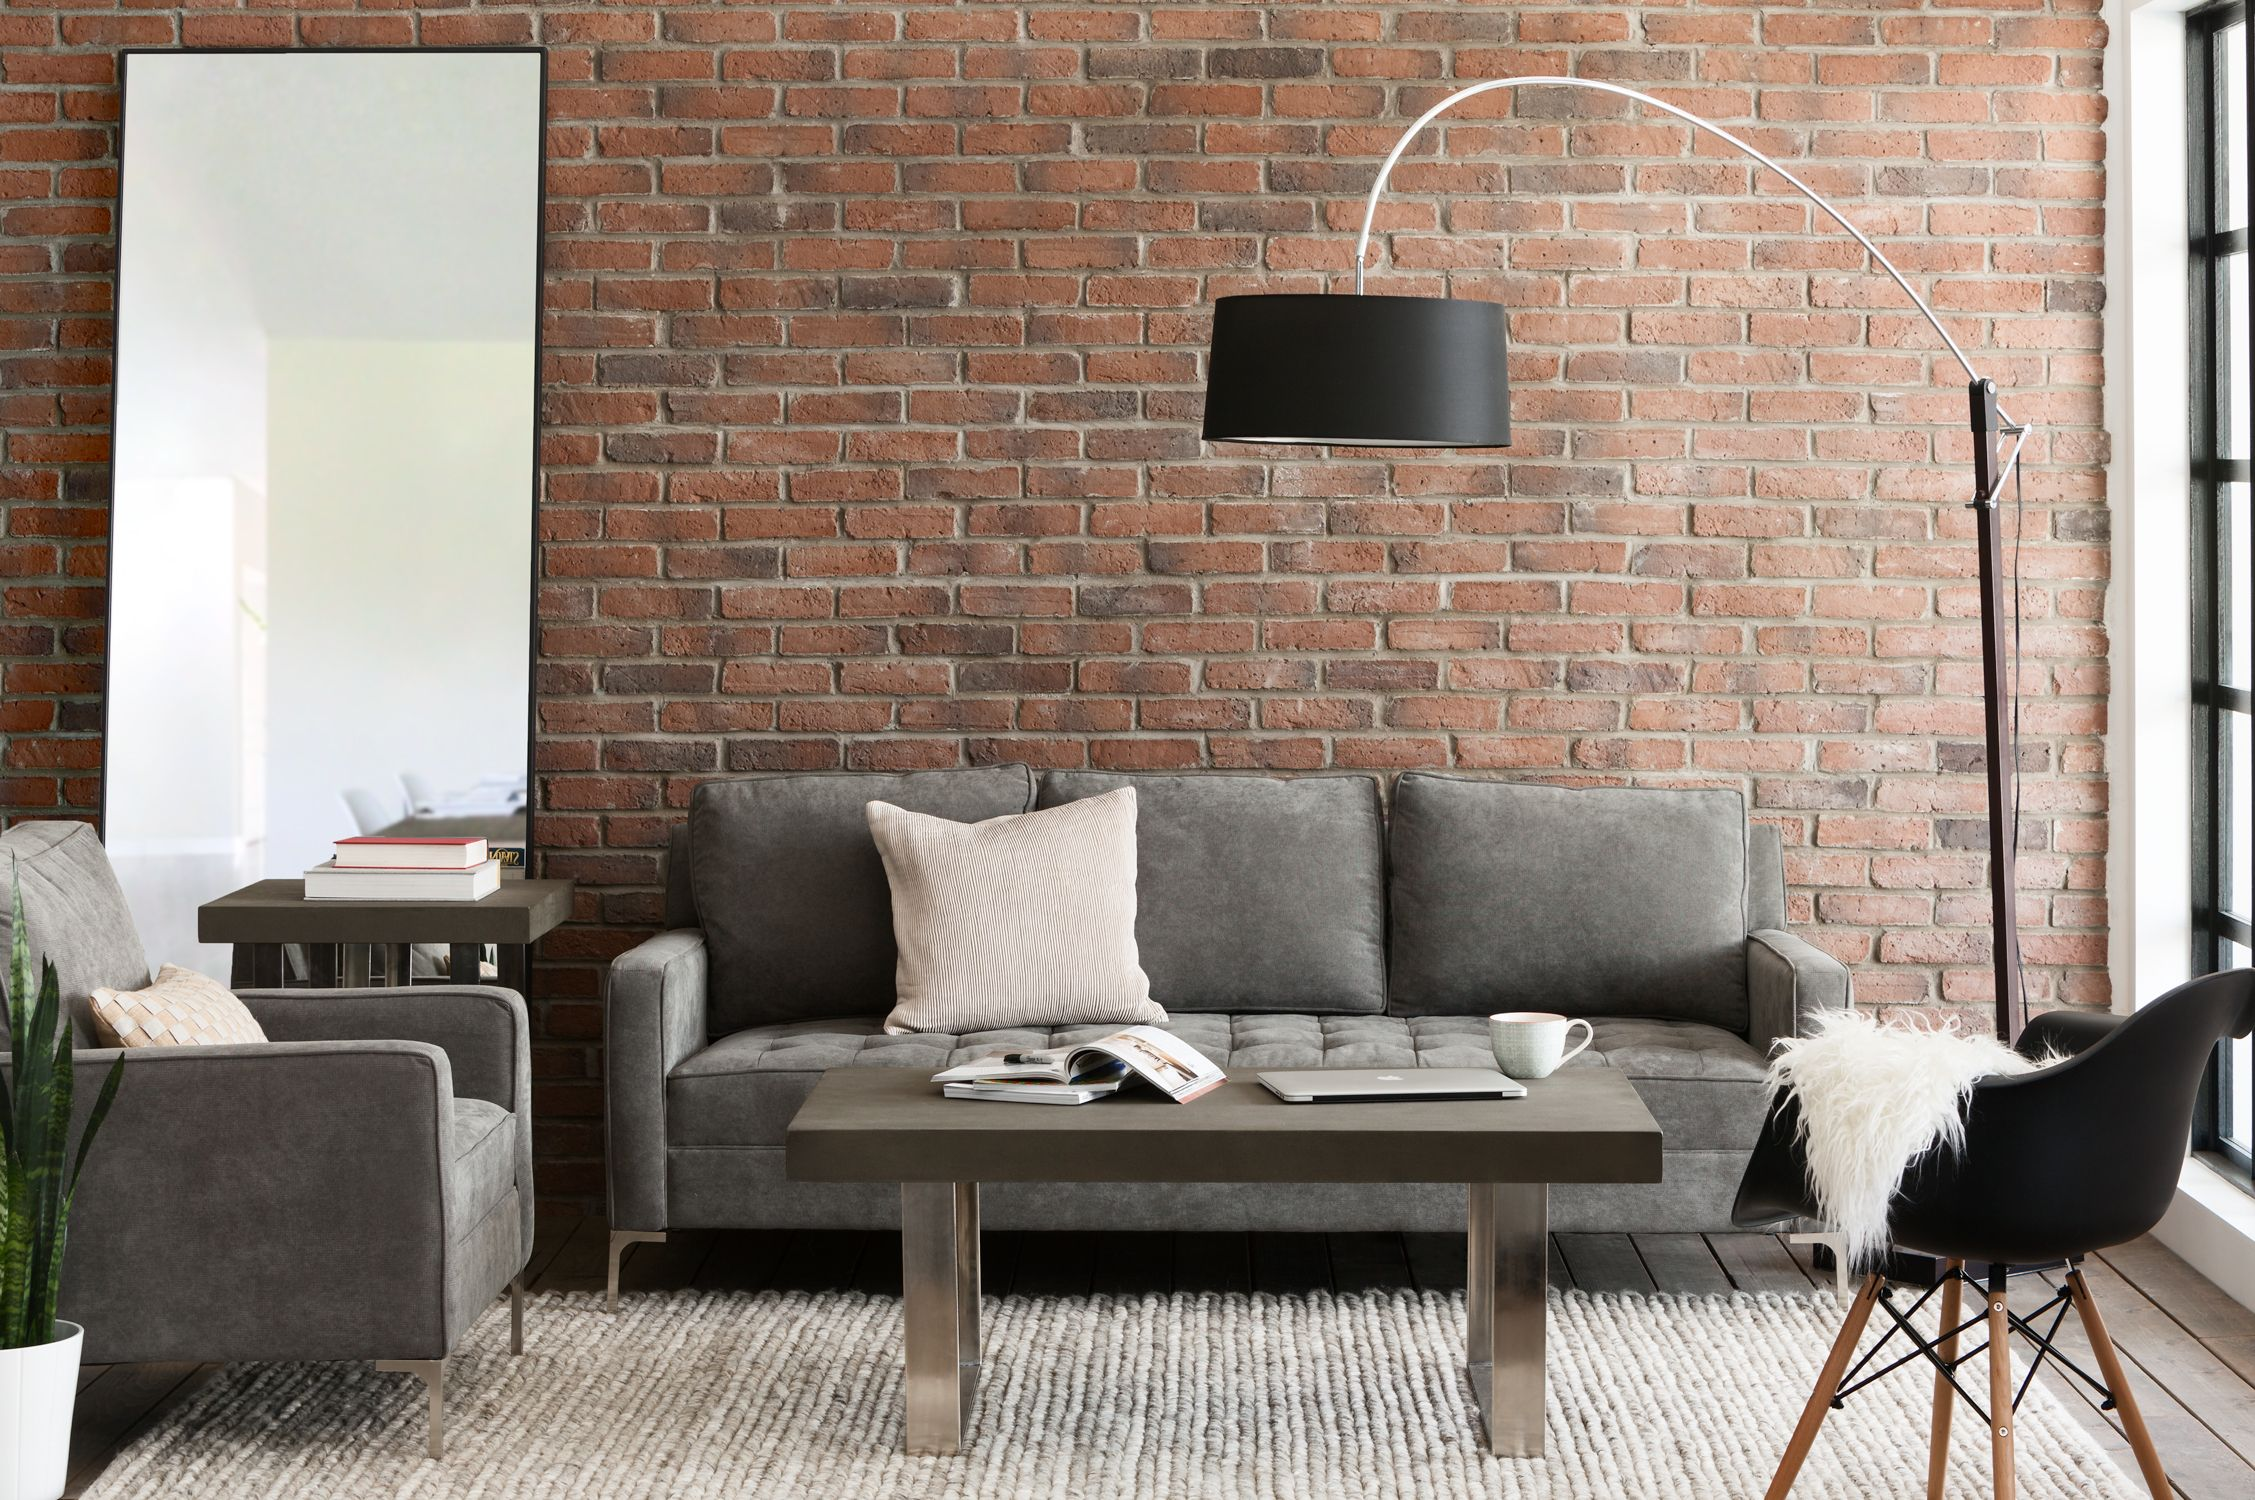 Comfort Meets Style With The Miami Sofa It Fits In Perfectly This Chic